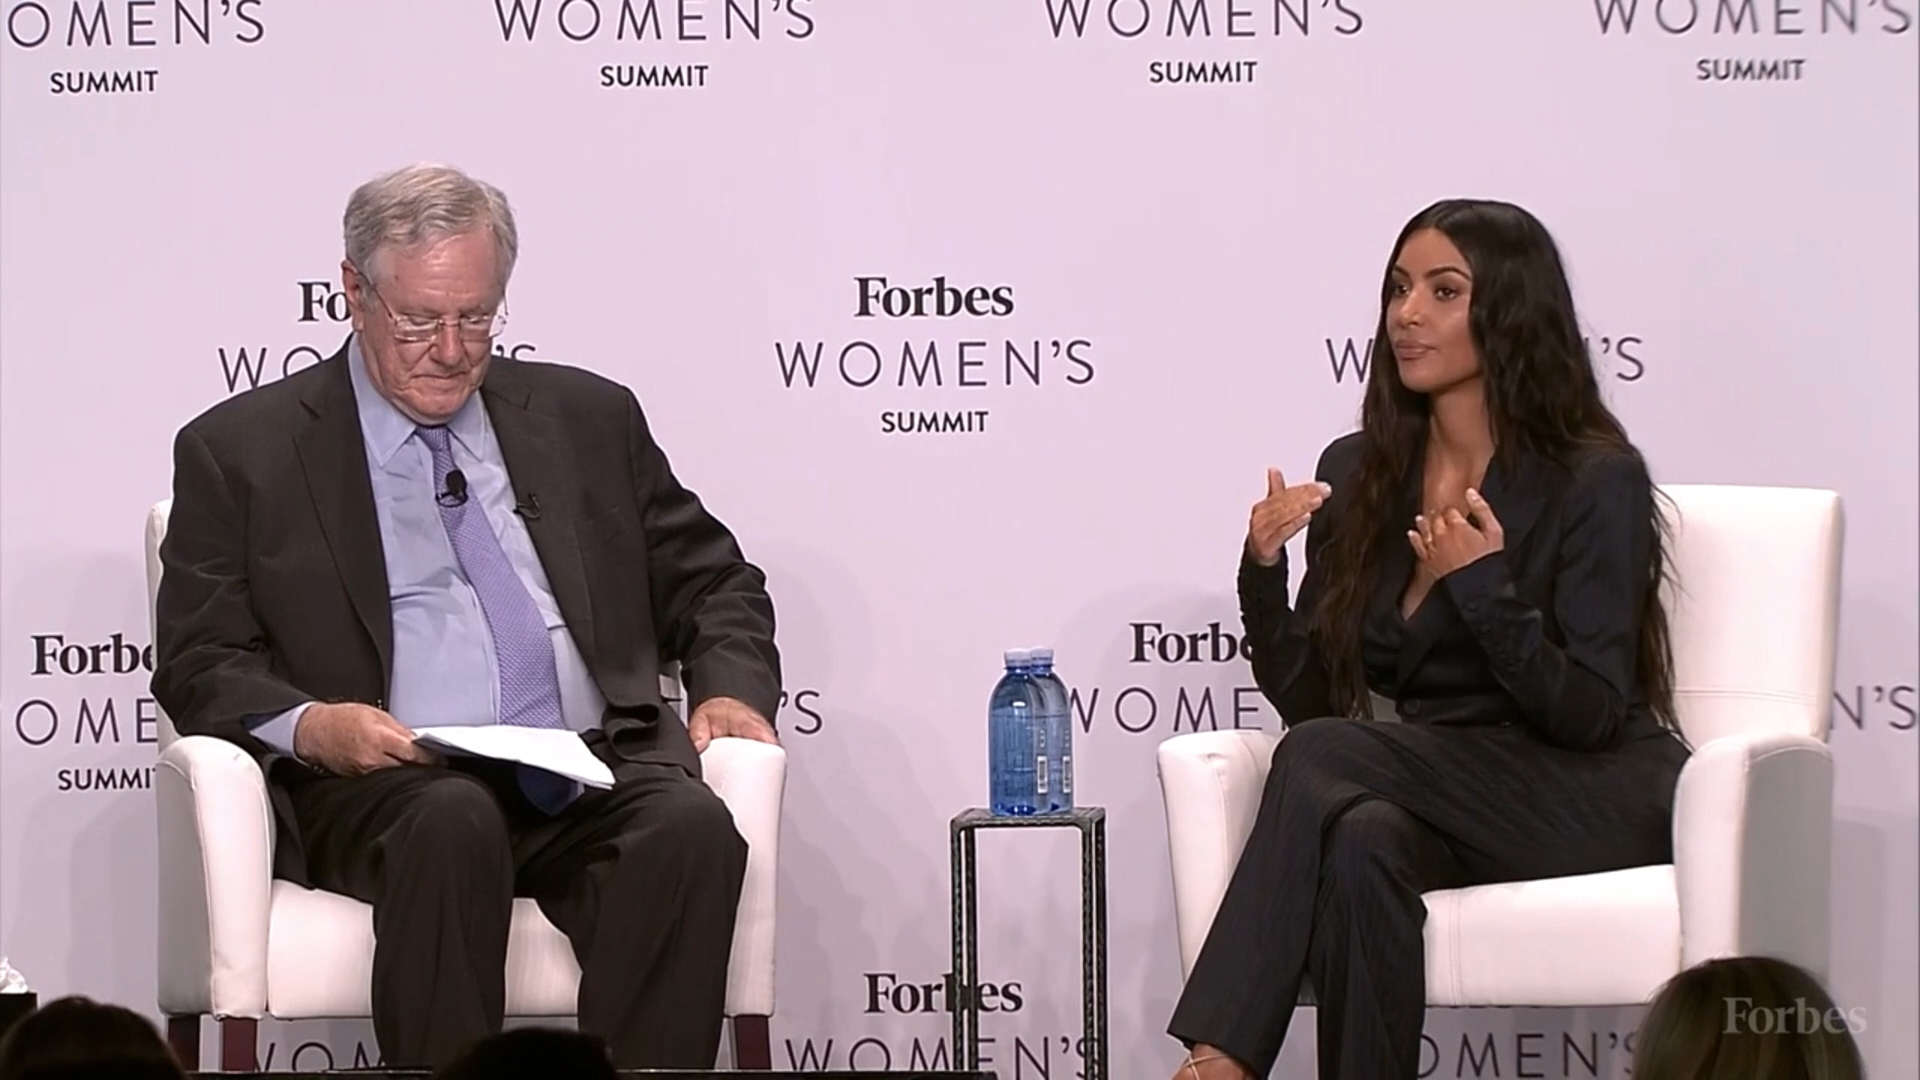 Kim Kardashian discusses her business ventures with Forbes magazine